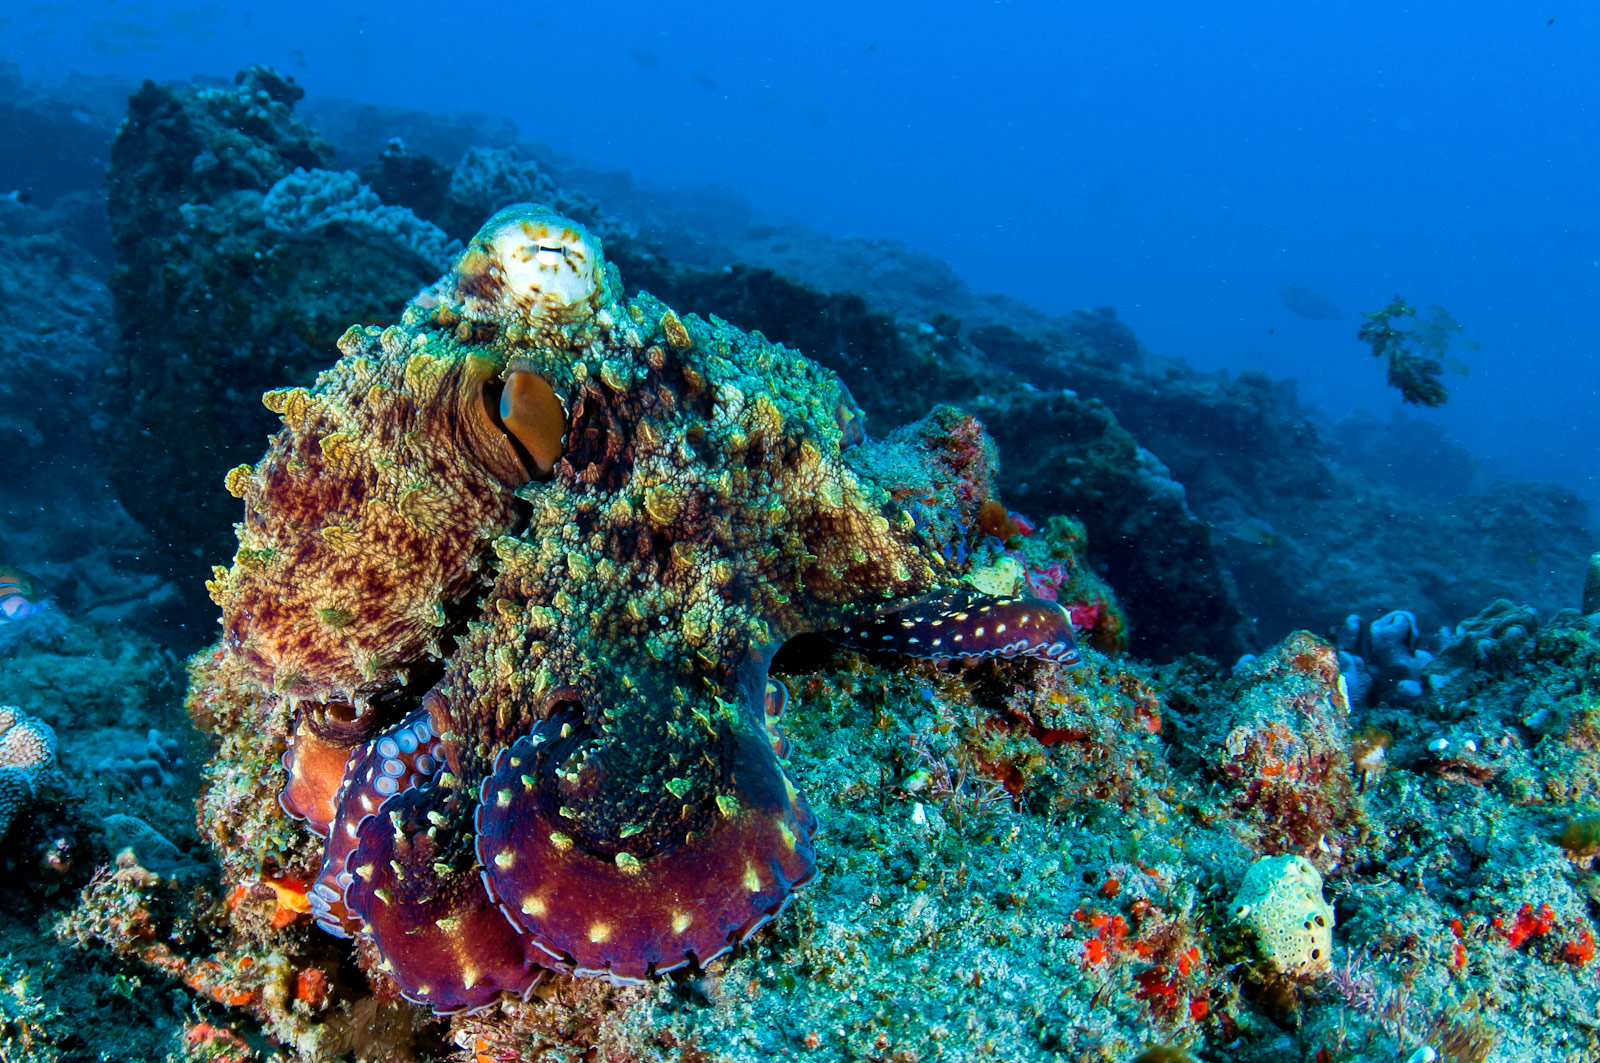 Octopus-east-african-coral-reefs-diving-DSC_8352-copy-2